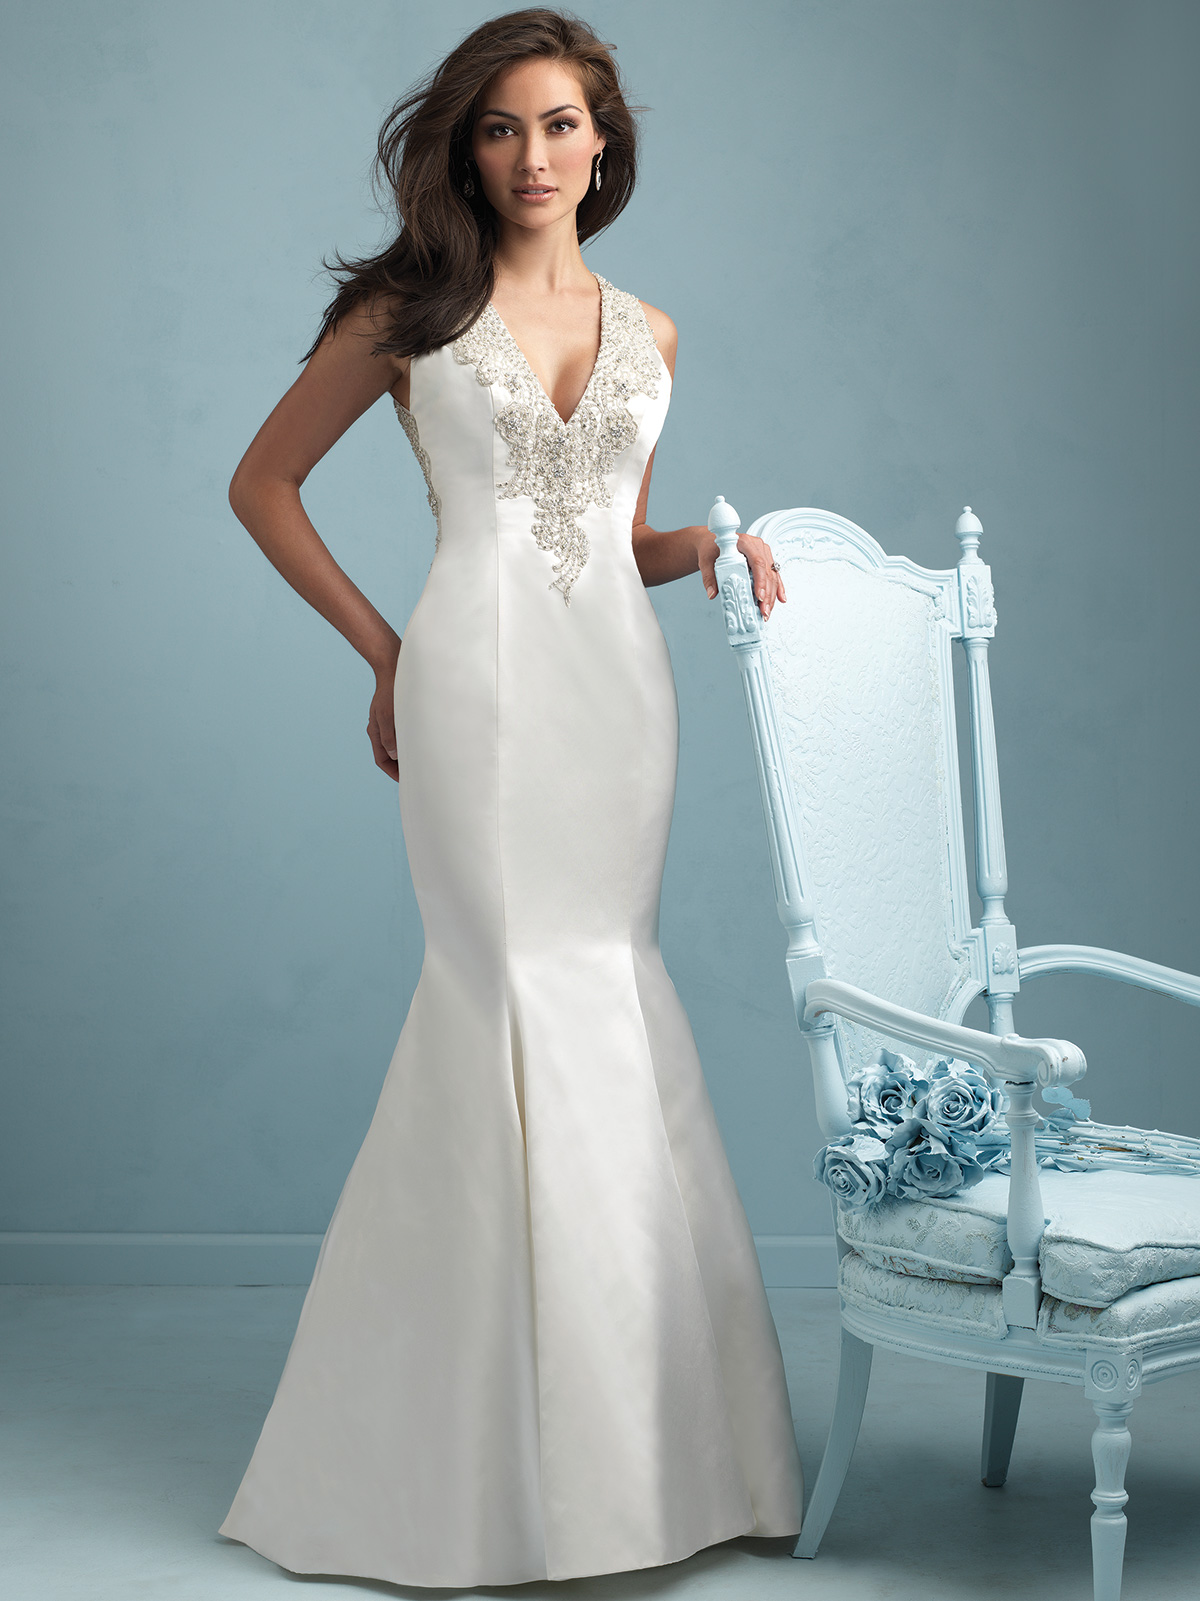 Perfect Satin Mermaid Gown With Sweetheart Neckline Composition ...